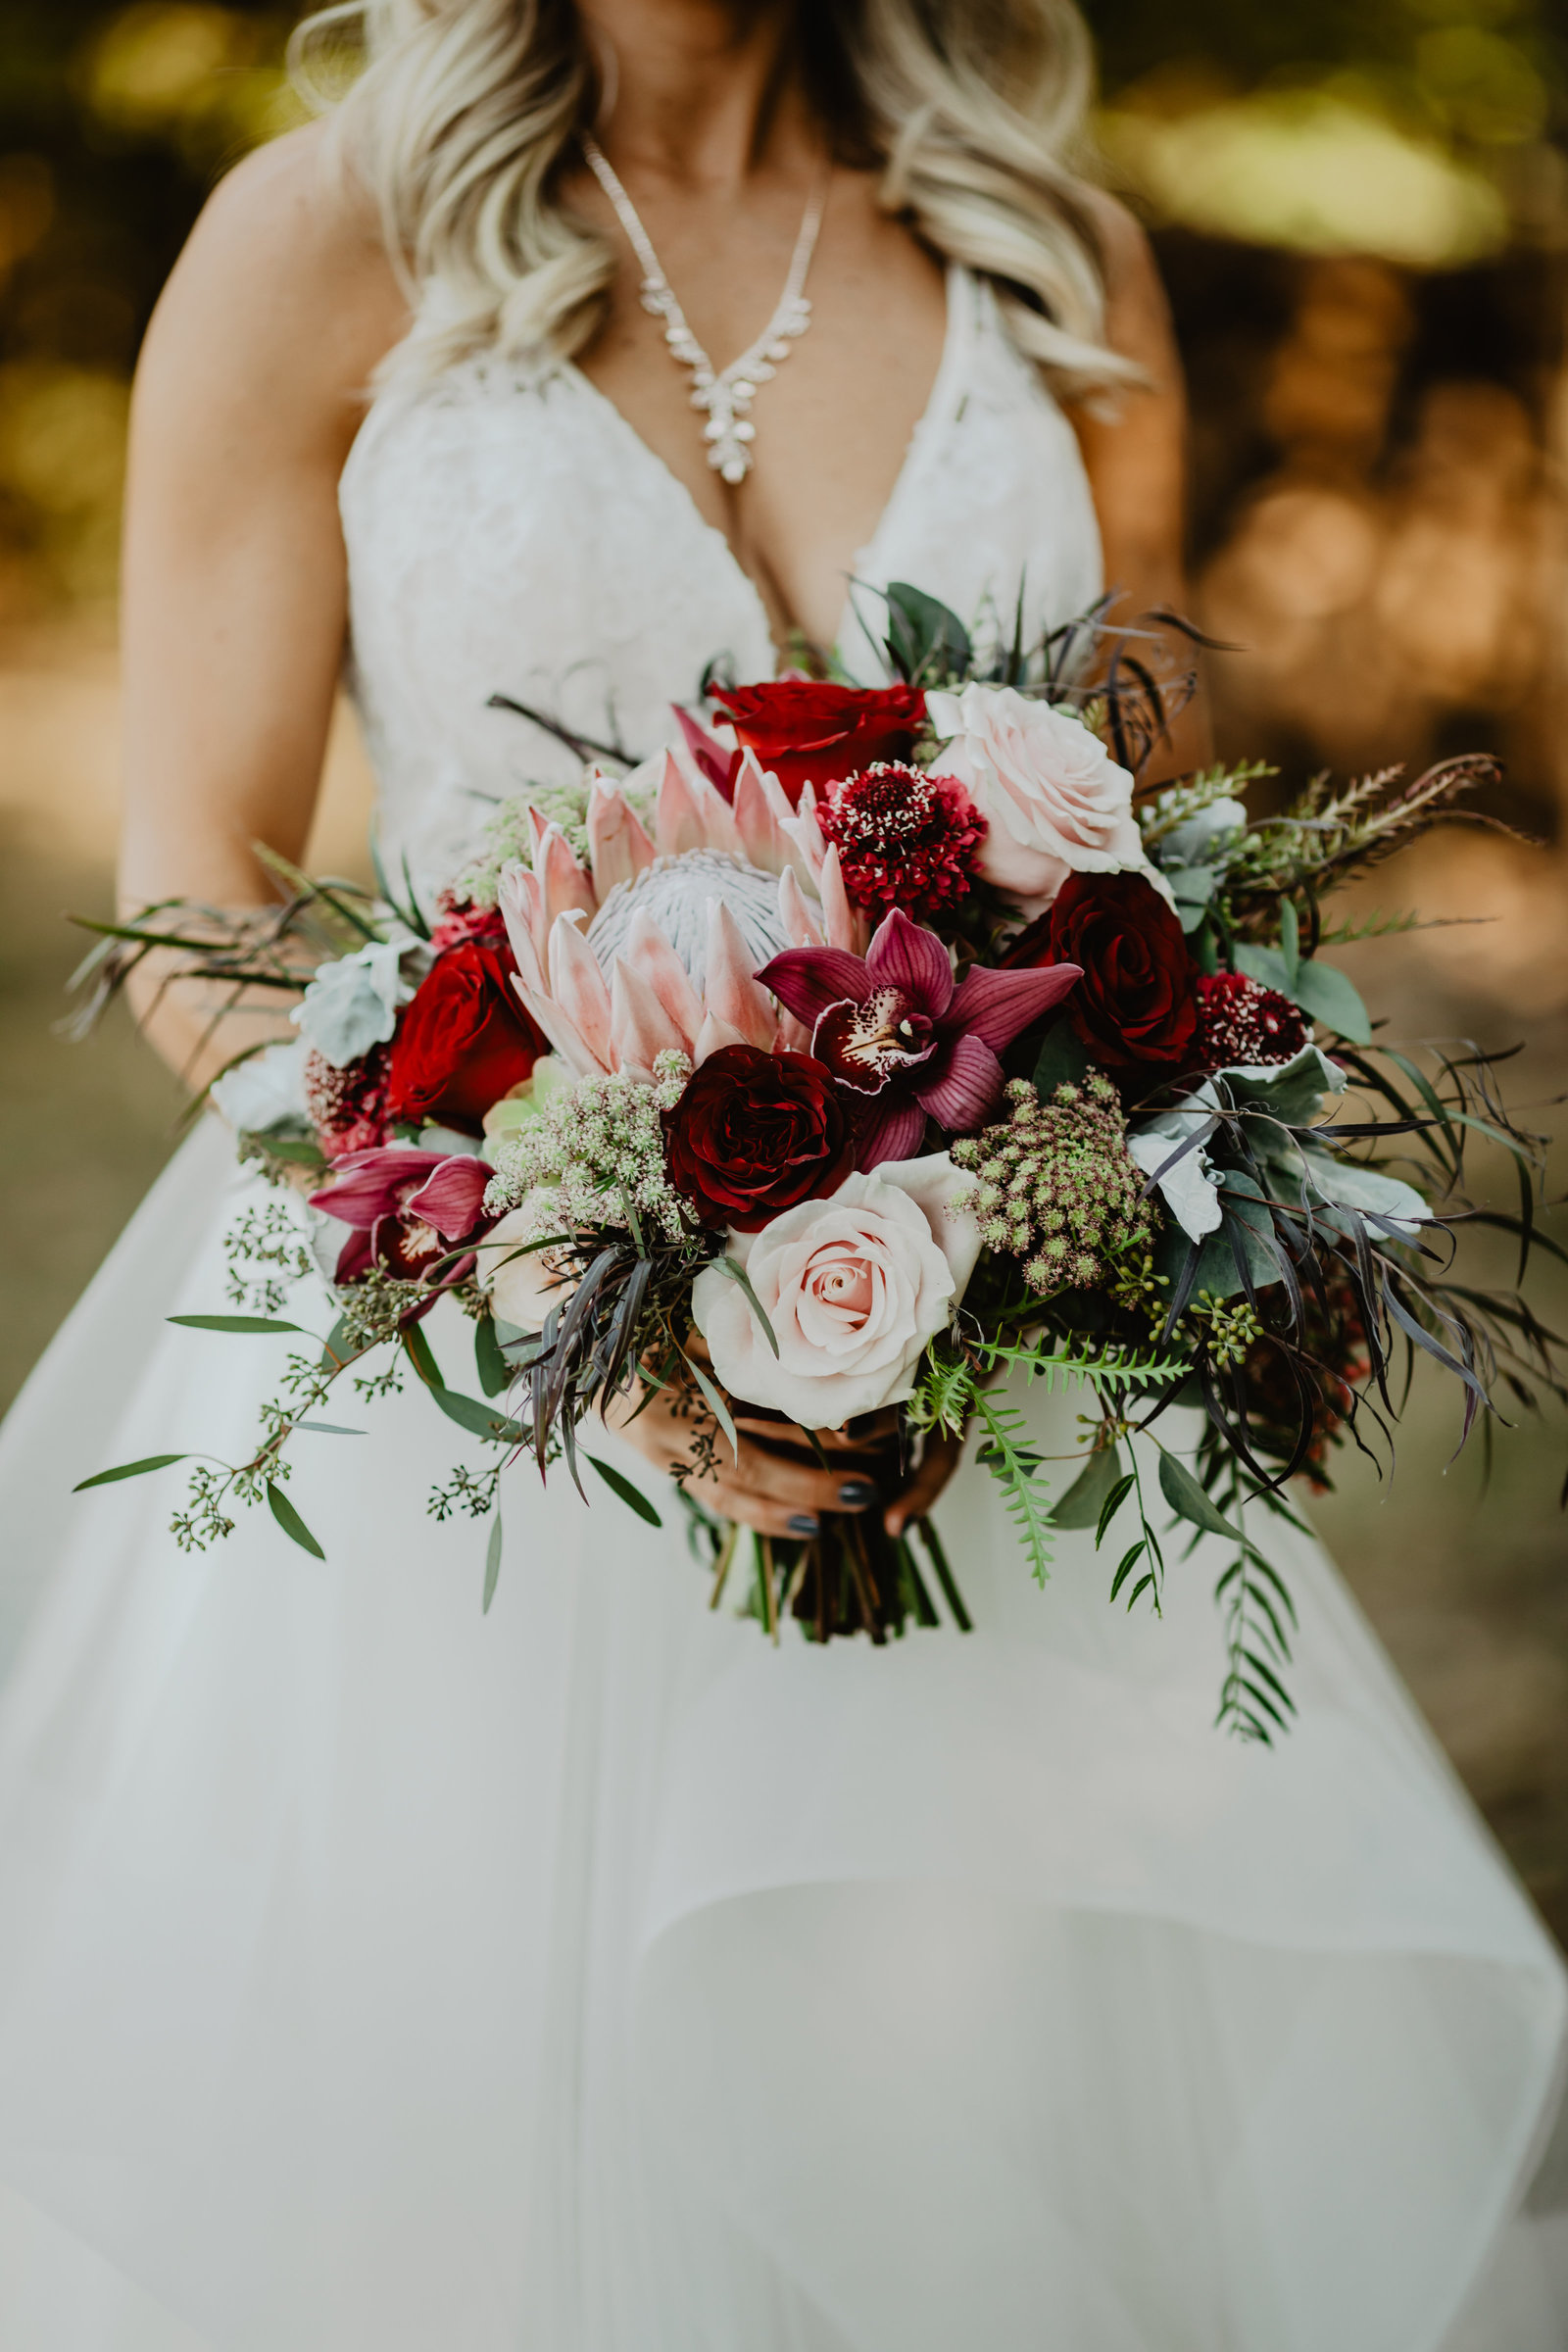 Bridal bouquet with pink and maroon accents.